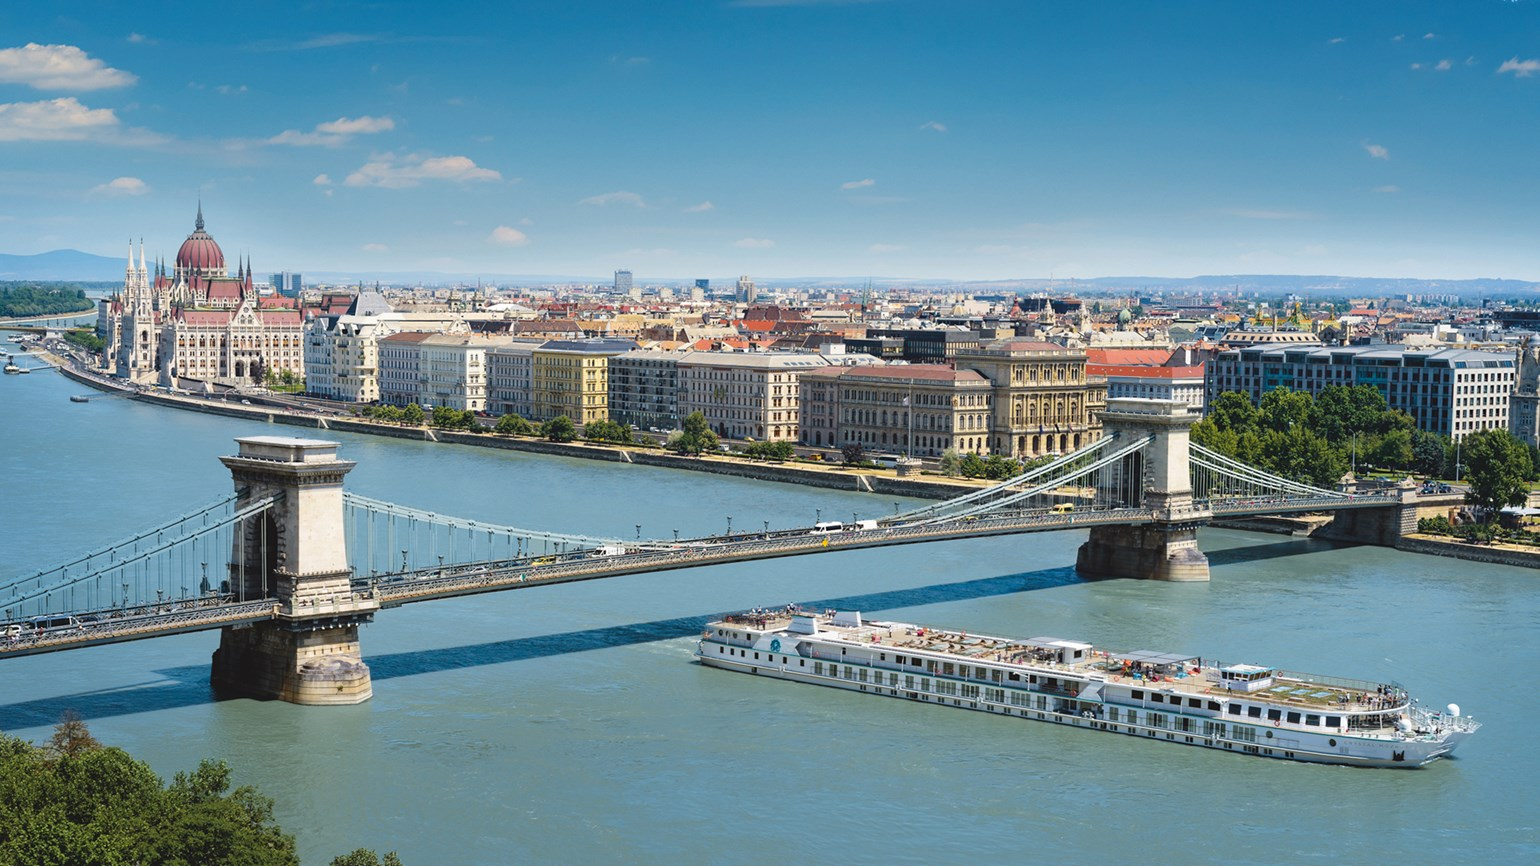 Crystal River Cruises returns the Mozart to its fleet to meet demand